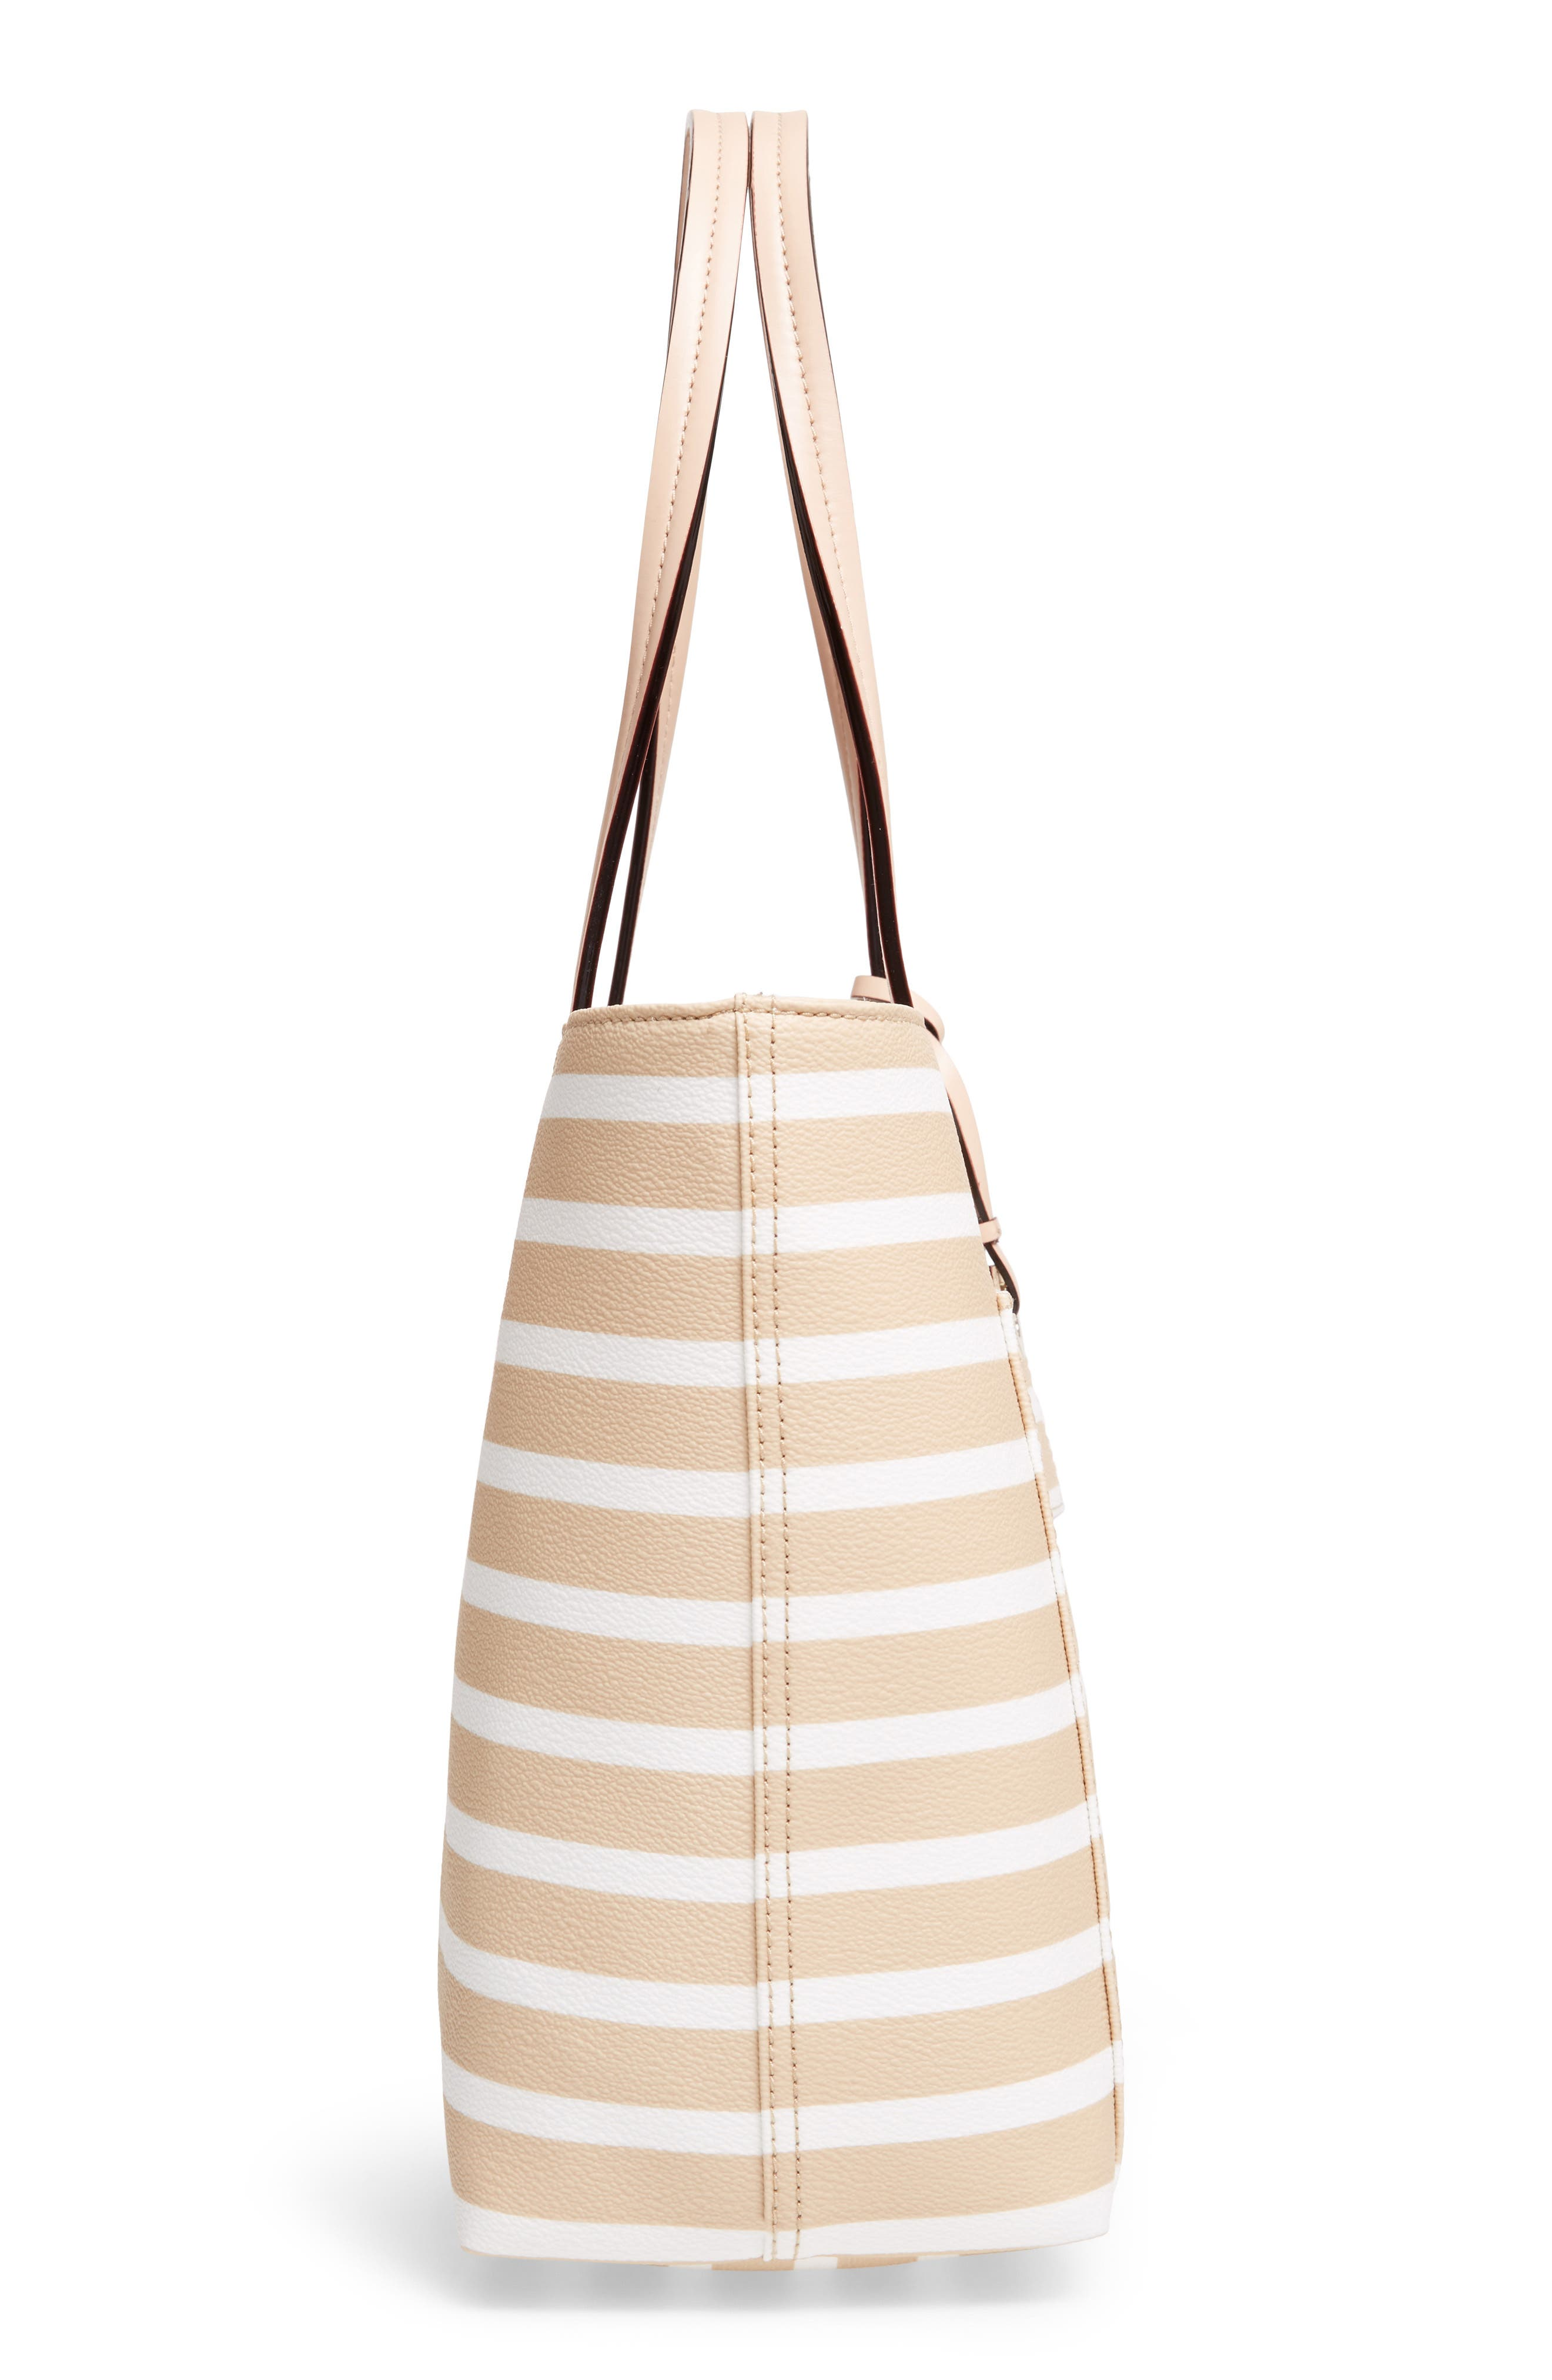 hyde lane - small riley faux leather tote,                             Alternate thumbnail 5, color,                             Classic Camel/ Cream